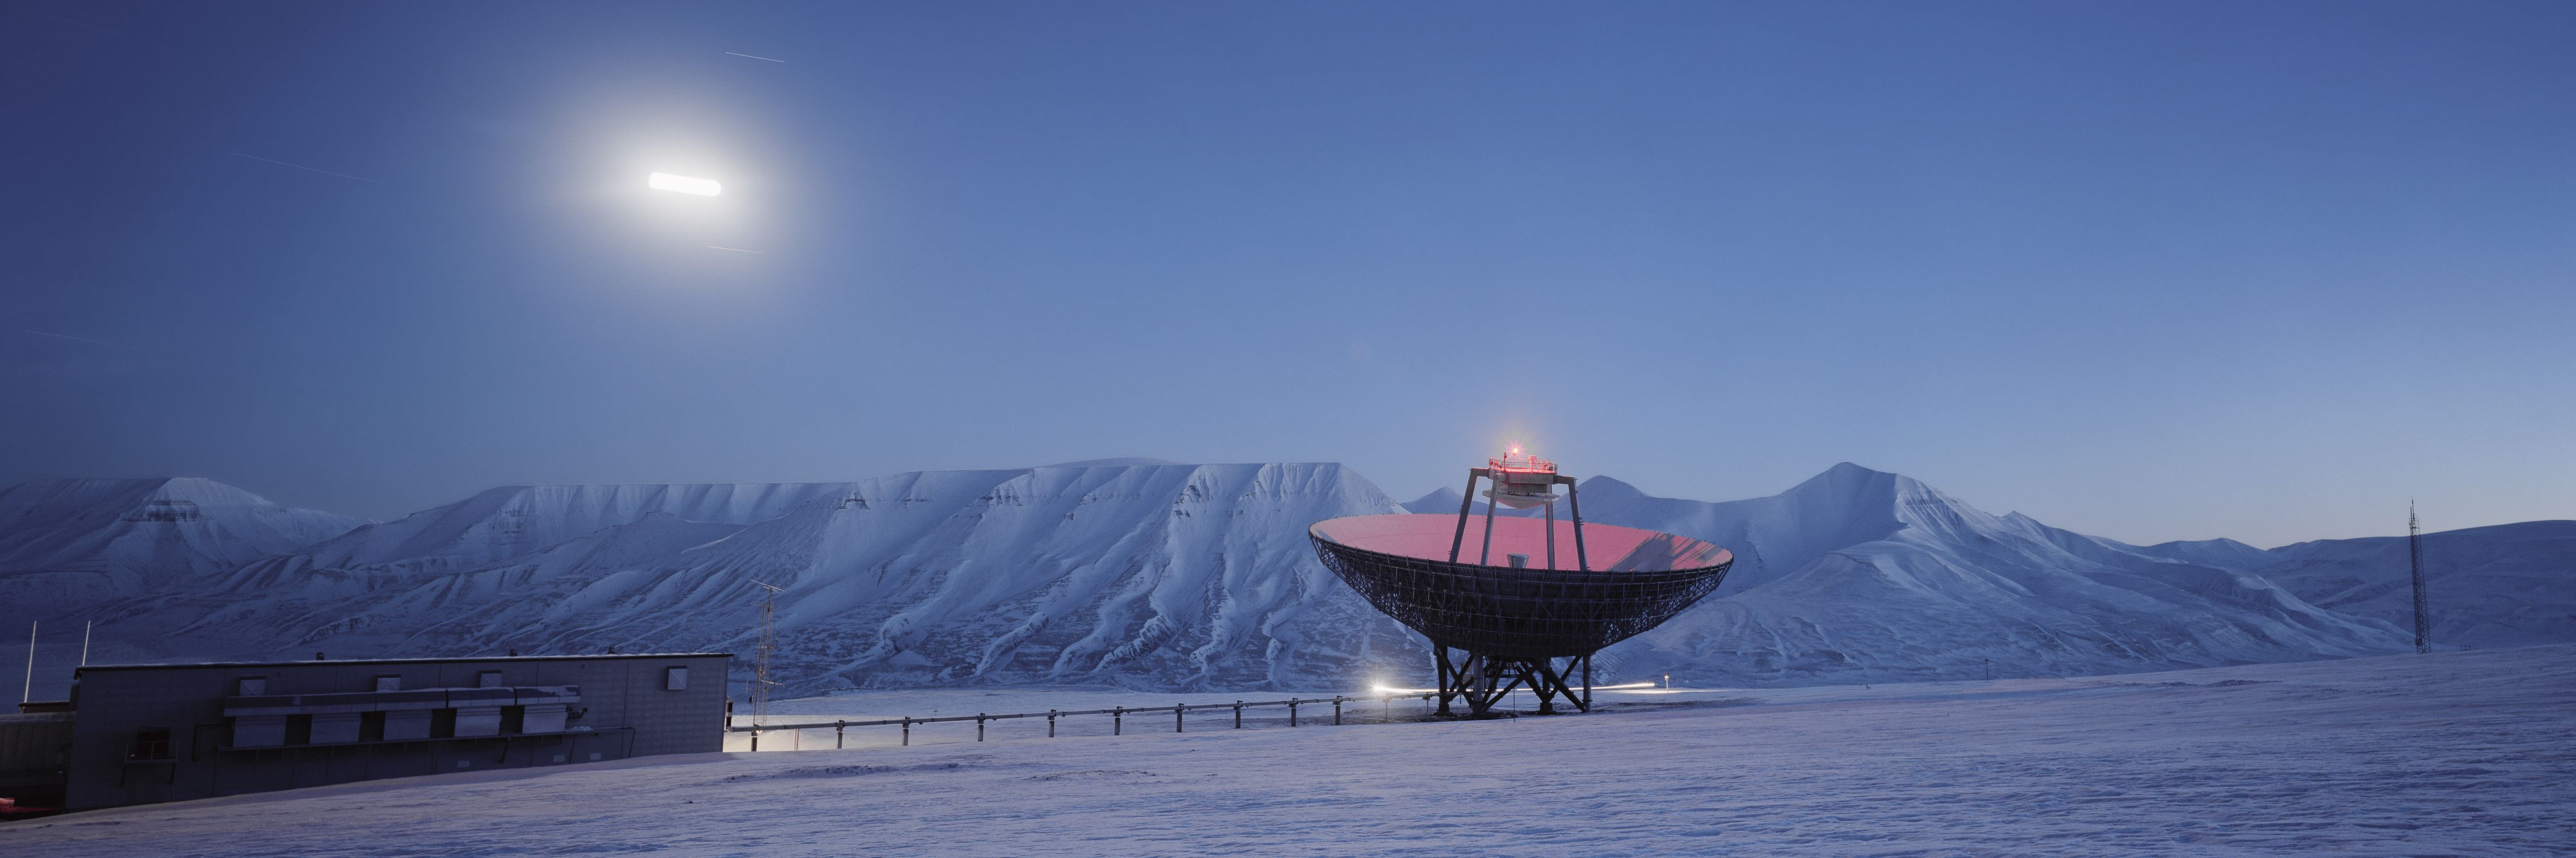 Dish in moonlight, Arctic Technology, Spitsbergen